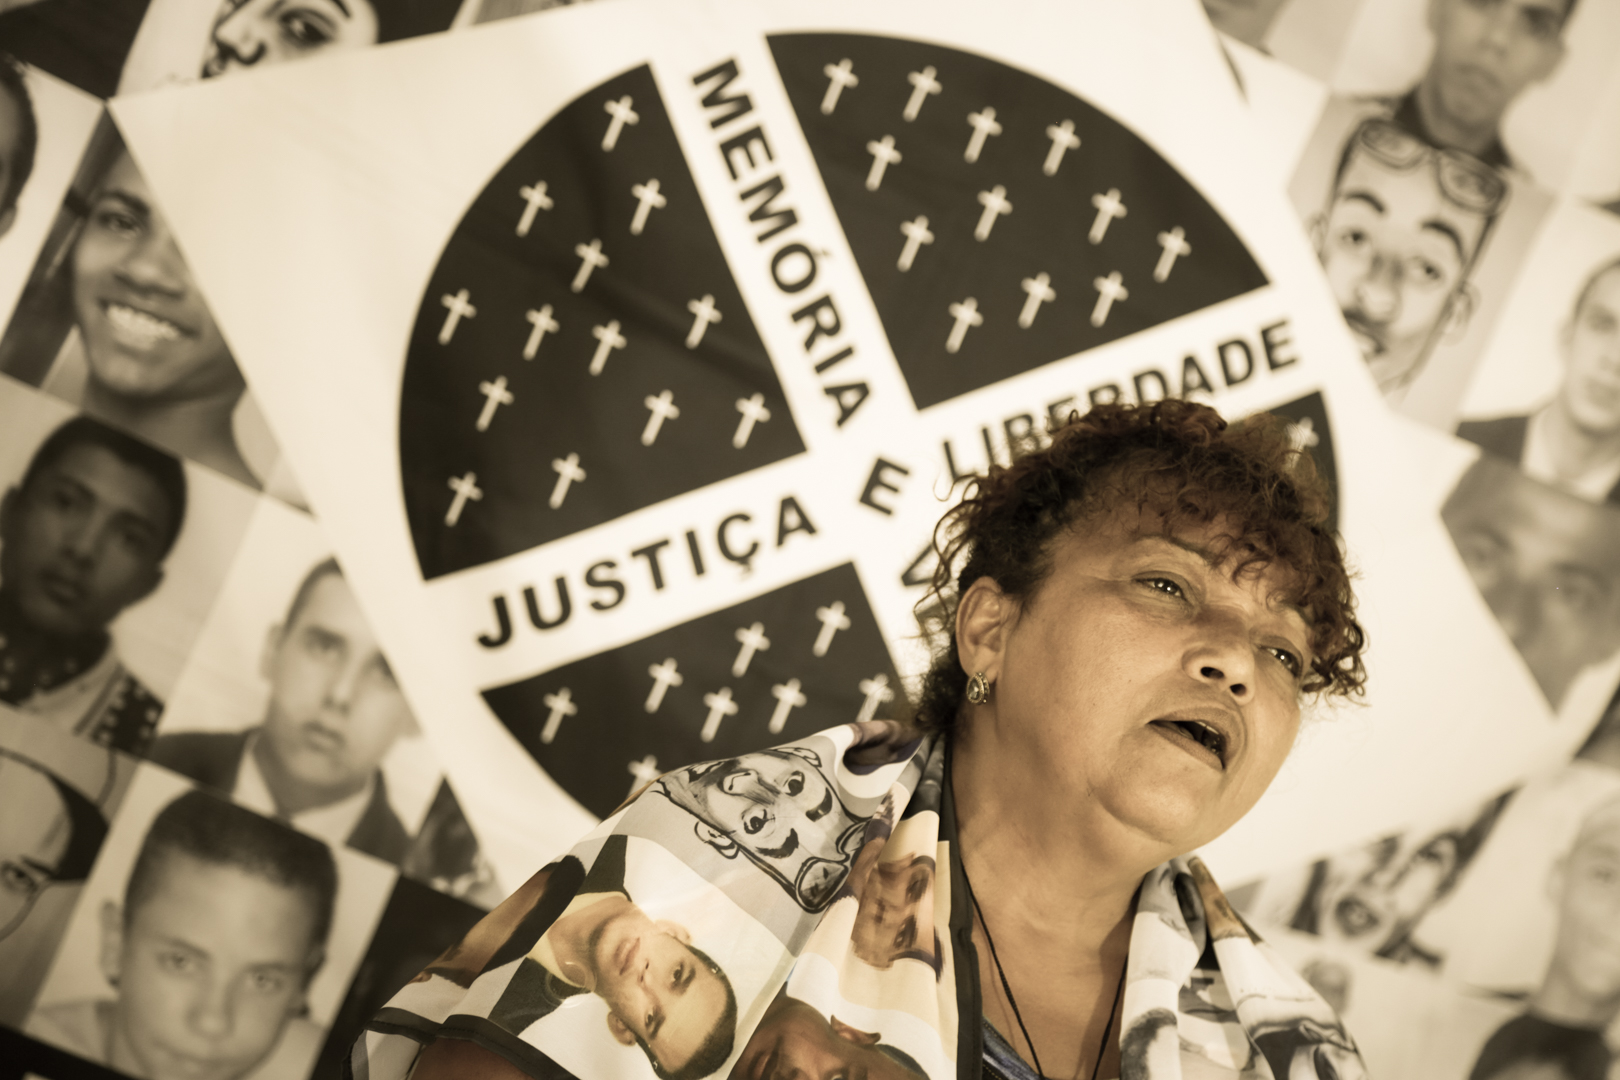 Dona Débora, leader of the Mothers of May Movement, in an interview with Conectas on the Crimes of May. (Photo: João Paulo Brito/Conectas)